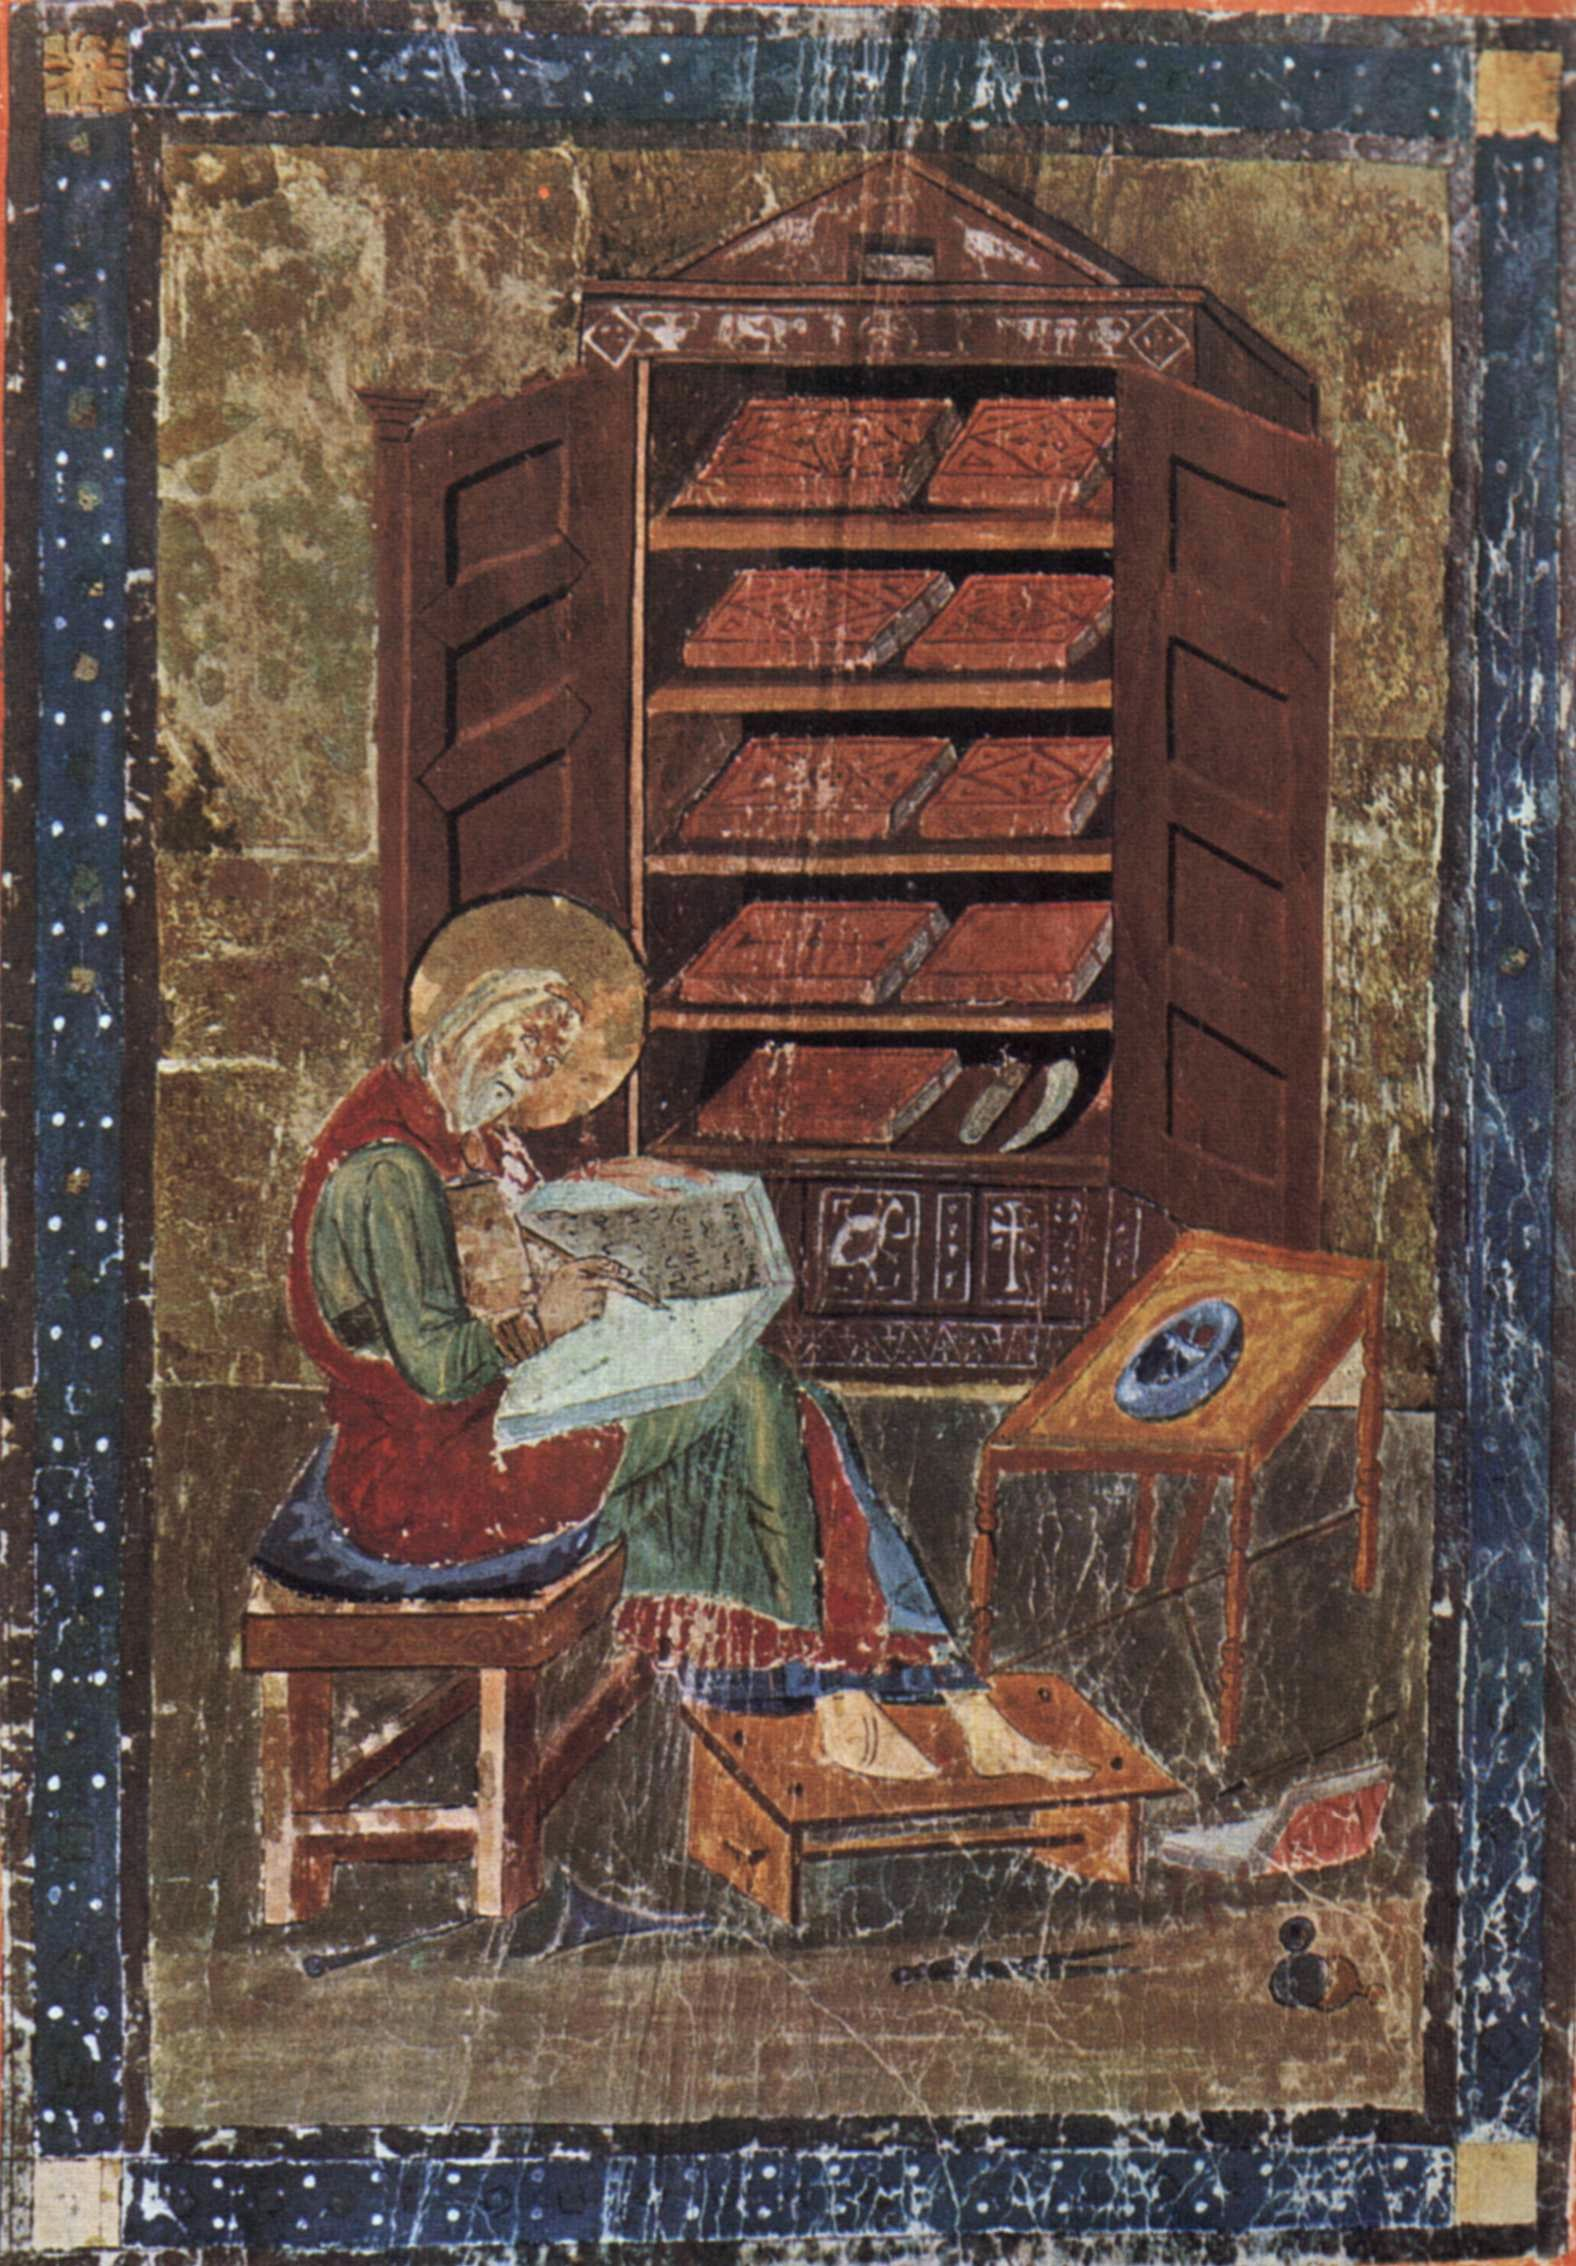 https://i0.wp.com/upload.wikimedia.org/wikipedia/commons/4/4b/Meister_des_Codex_Amiatus_001.jpg